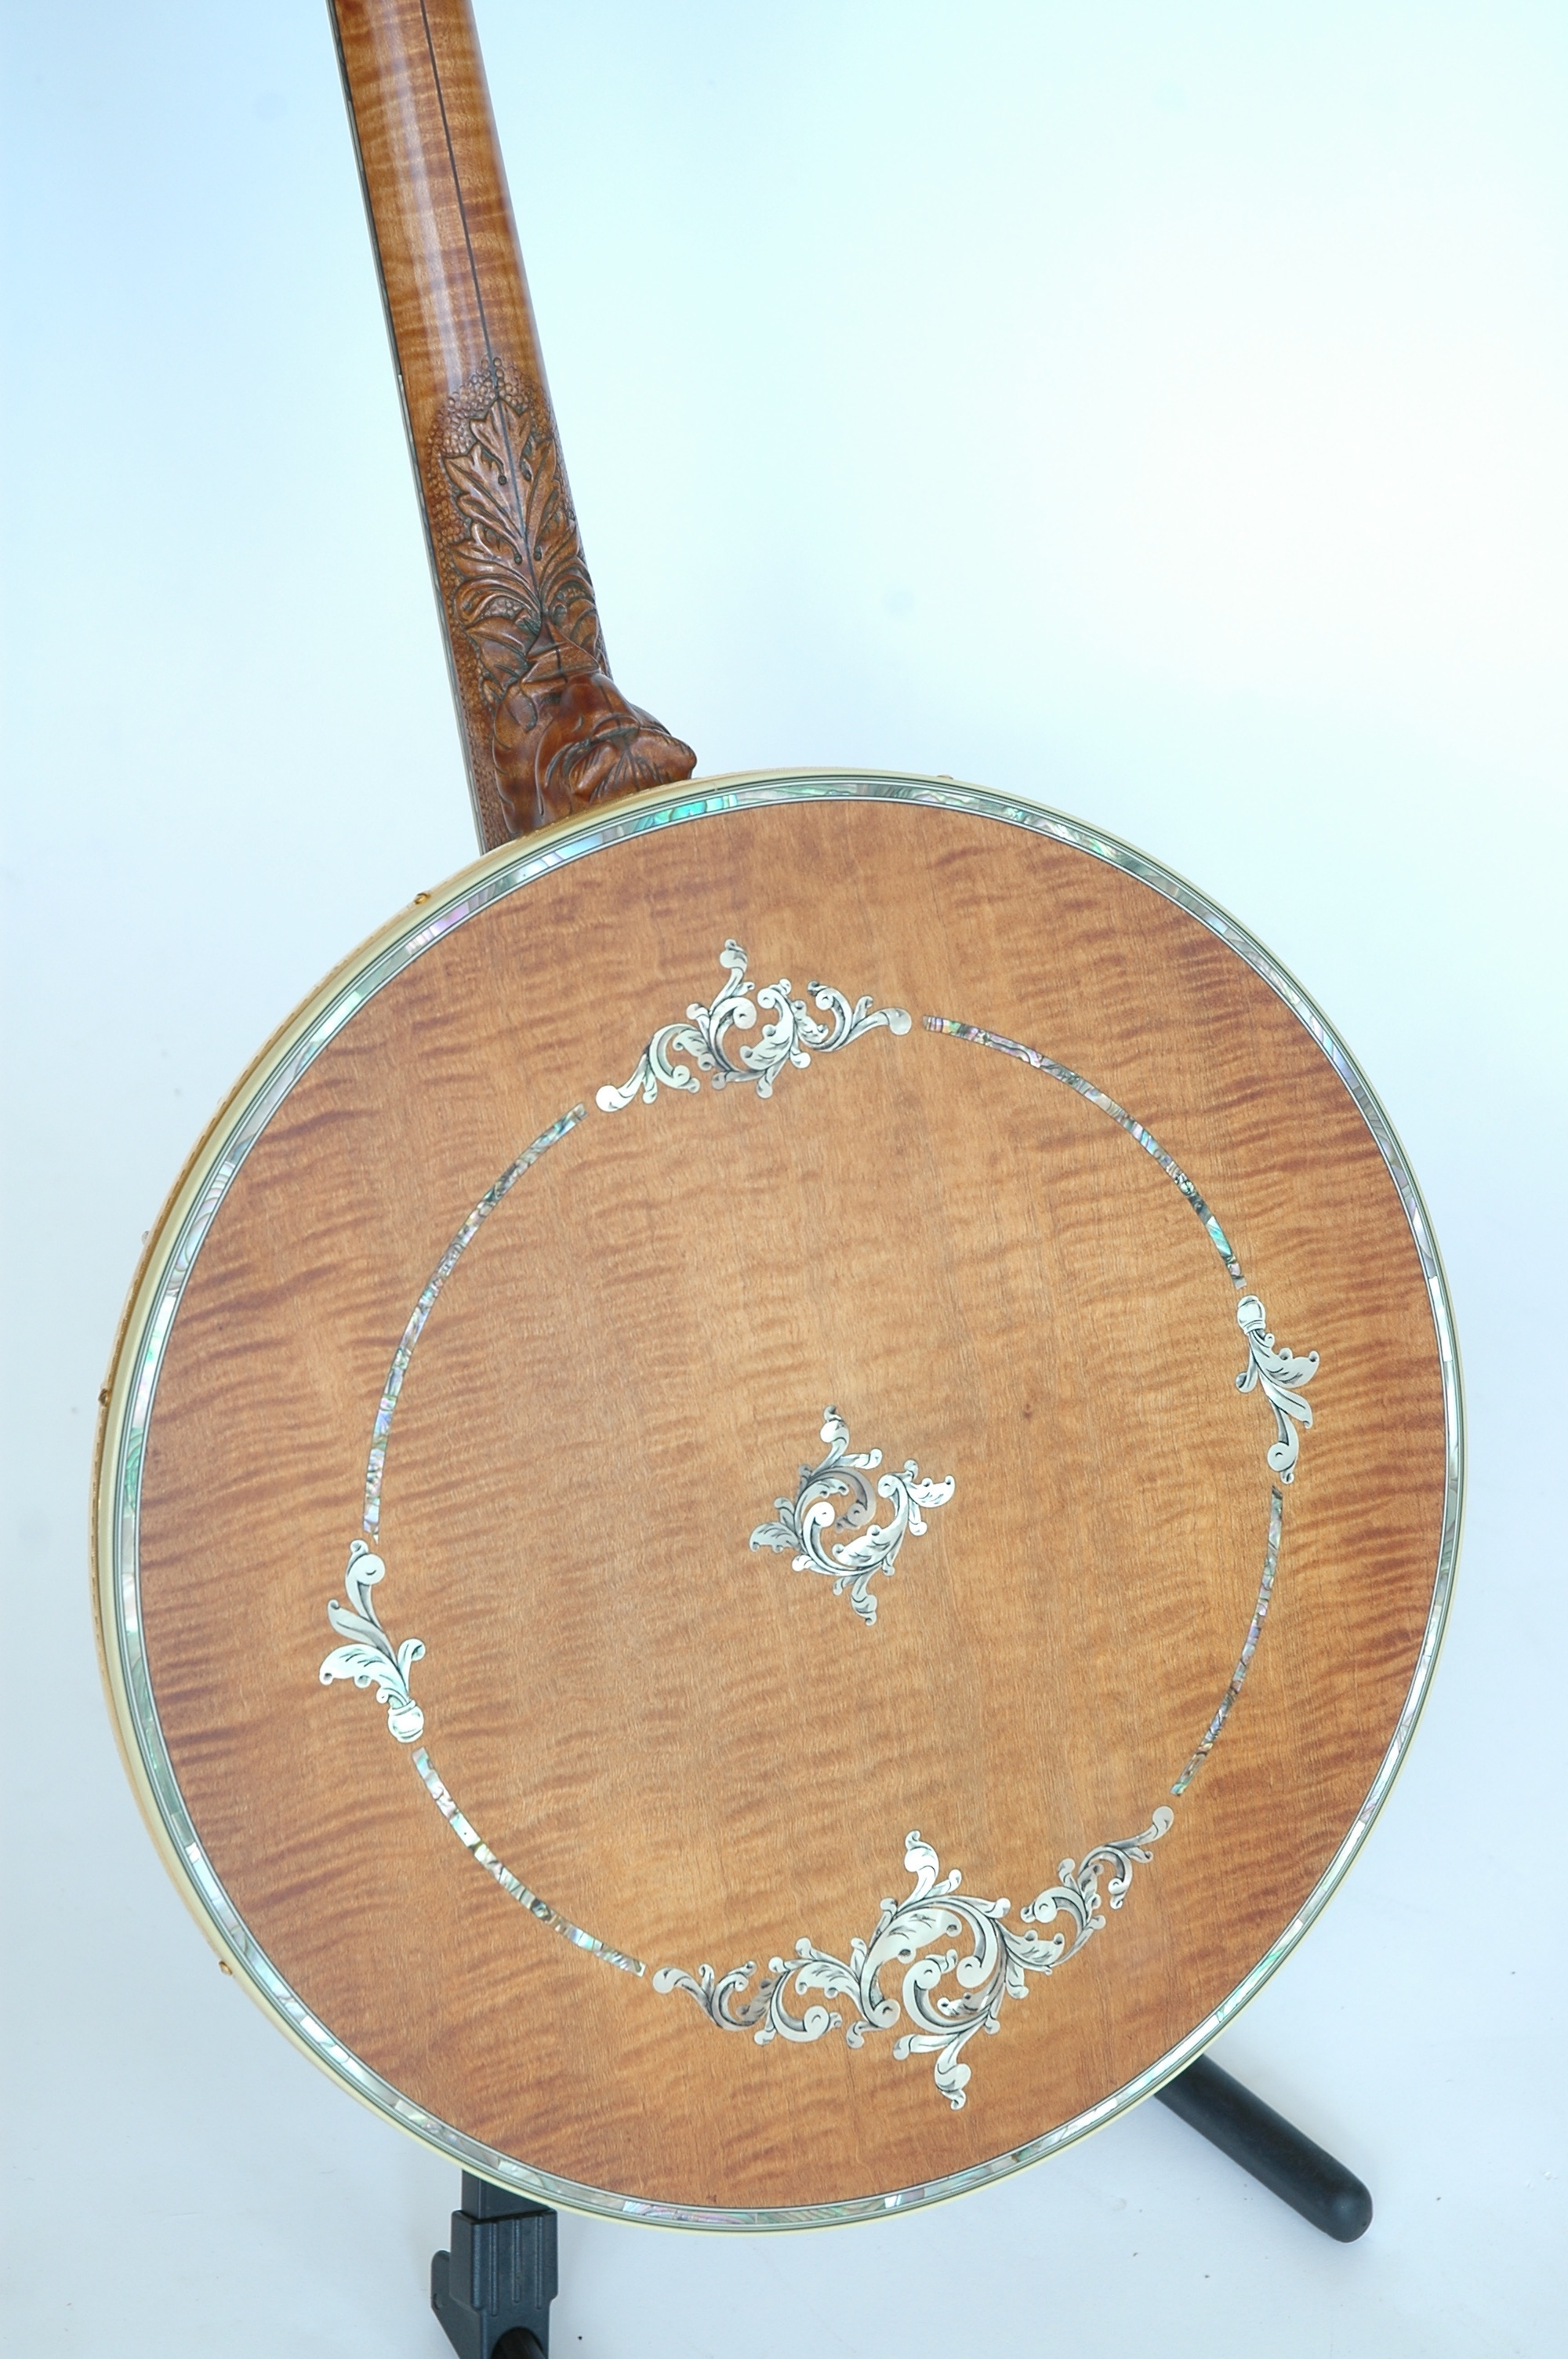 Ome Grand Artist Spring Banjo Resonator